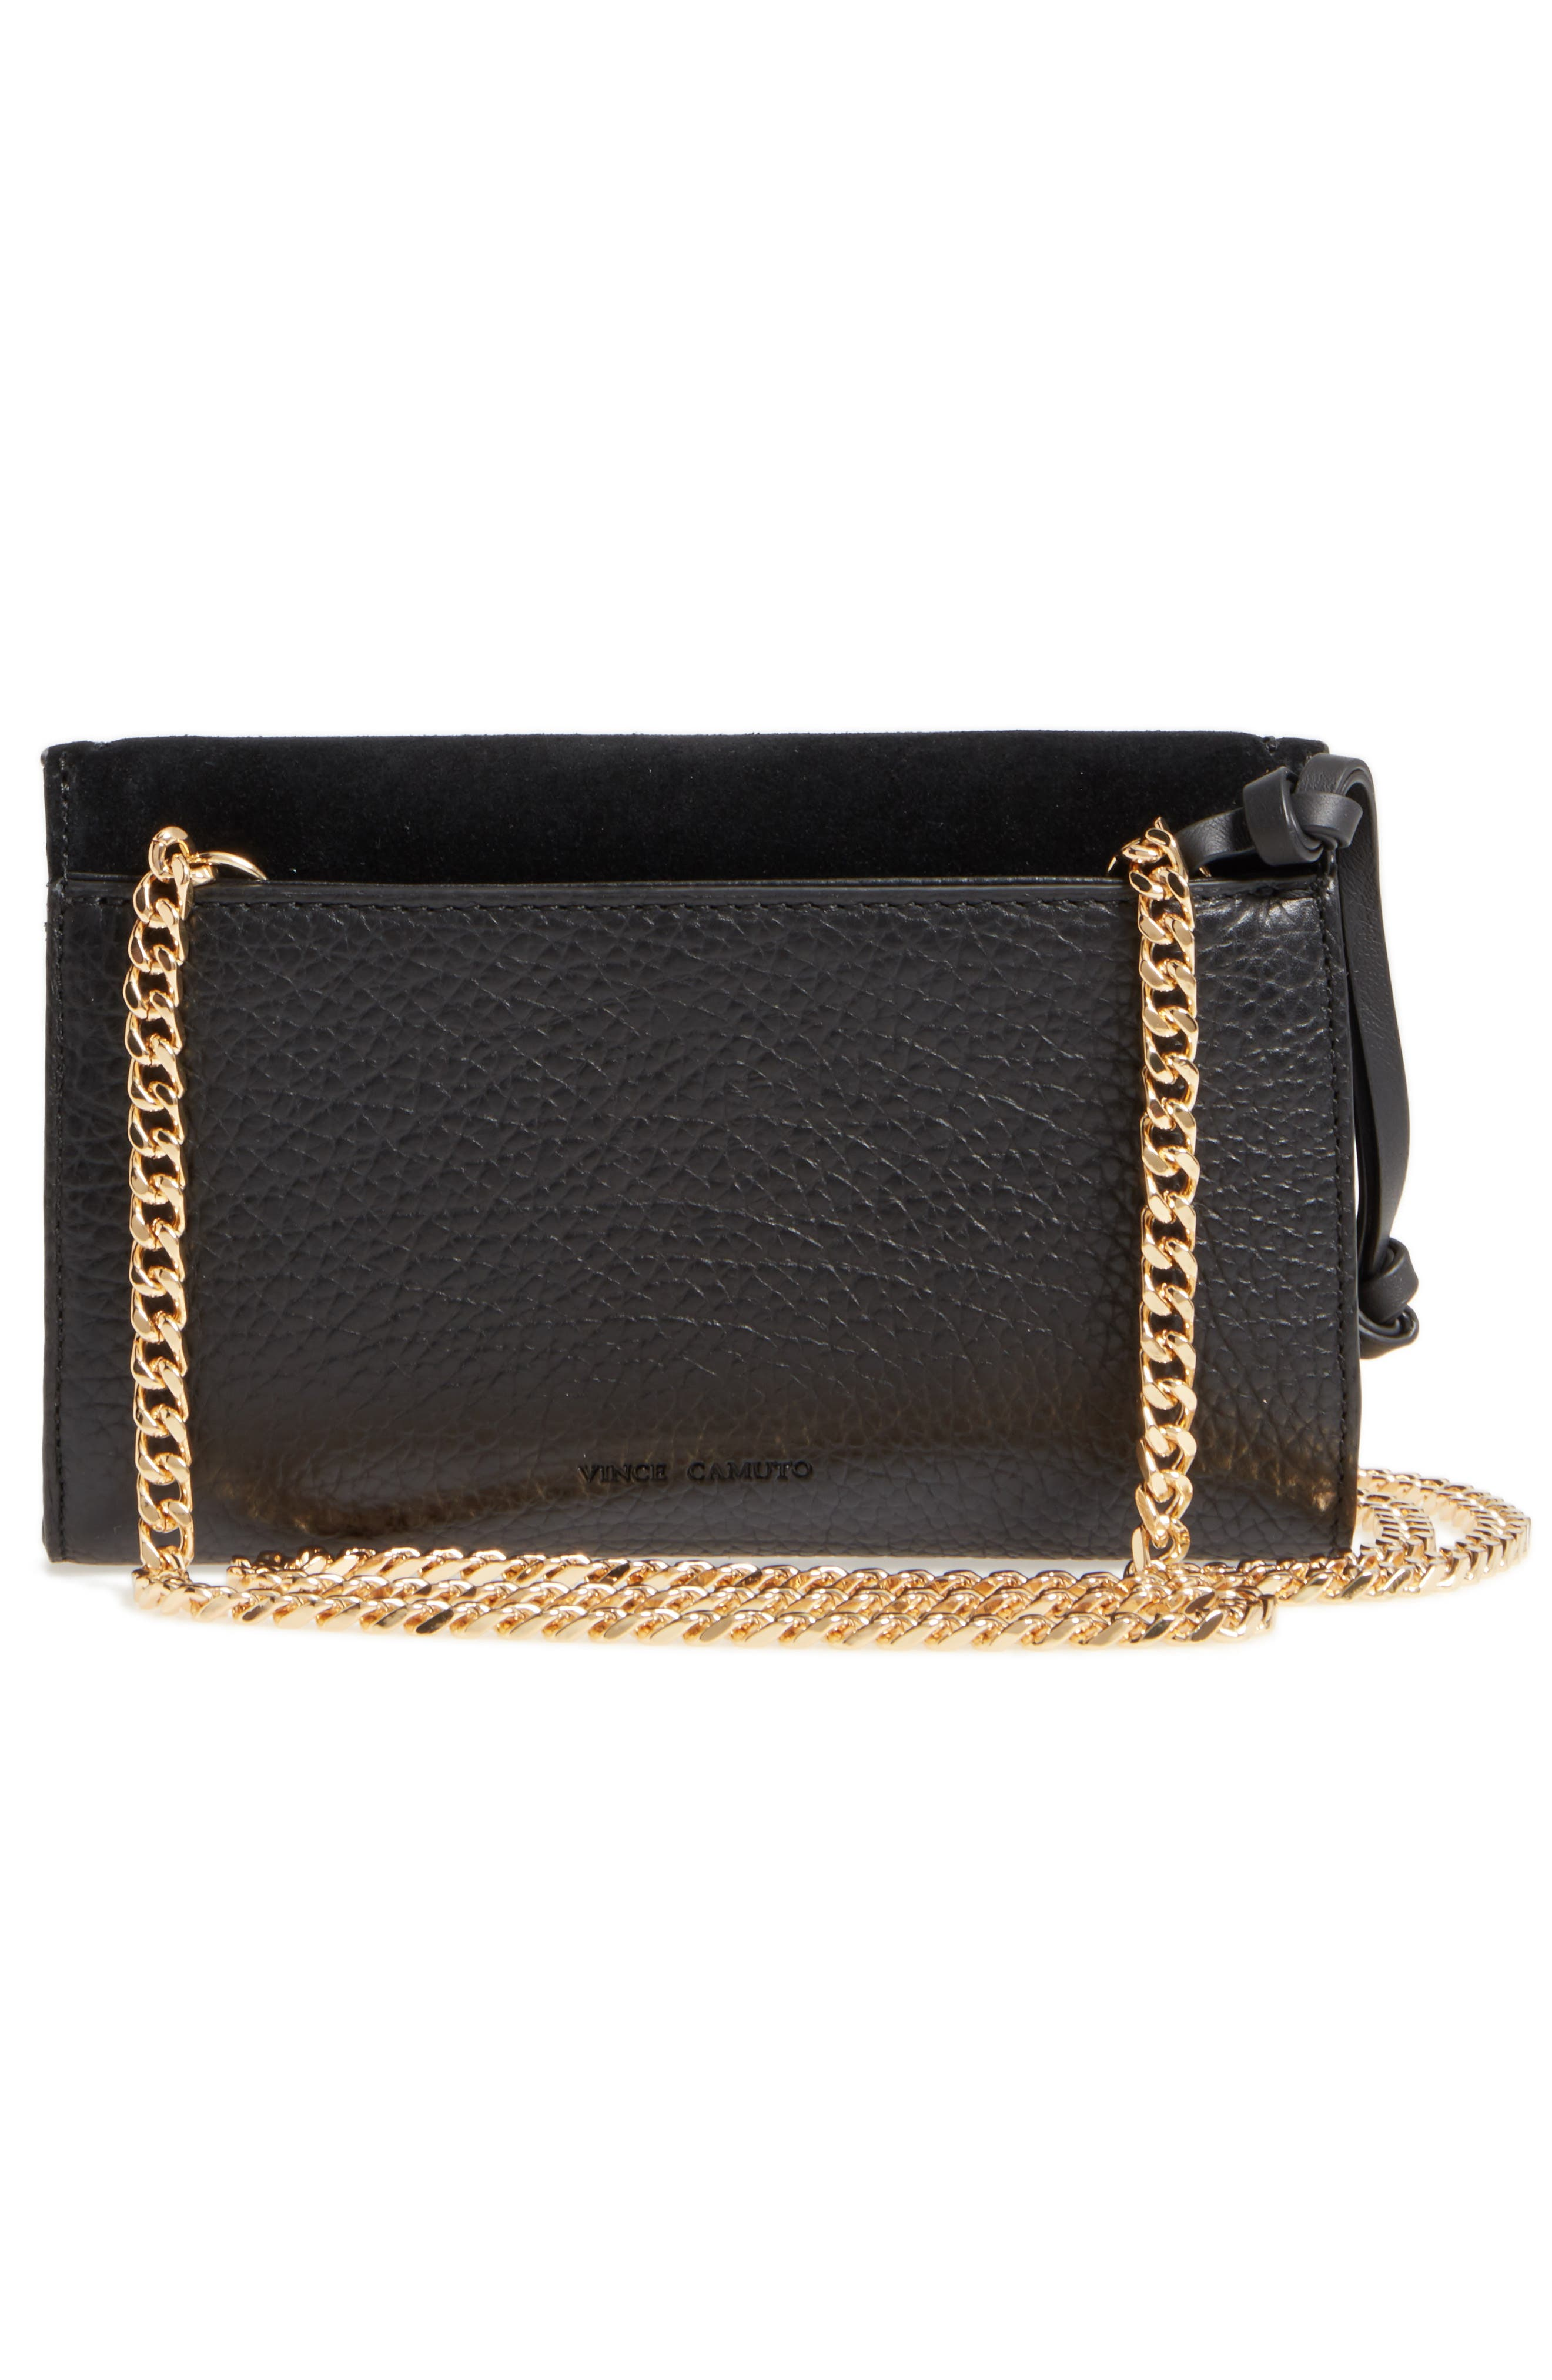 Blena Leather & Suede Clutch,                             Alternate thumbnail 3, color,                             001